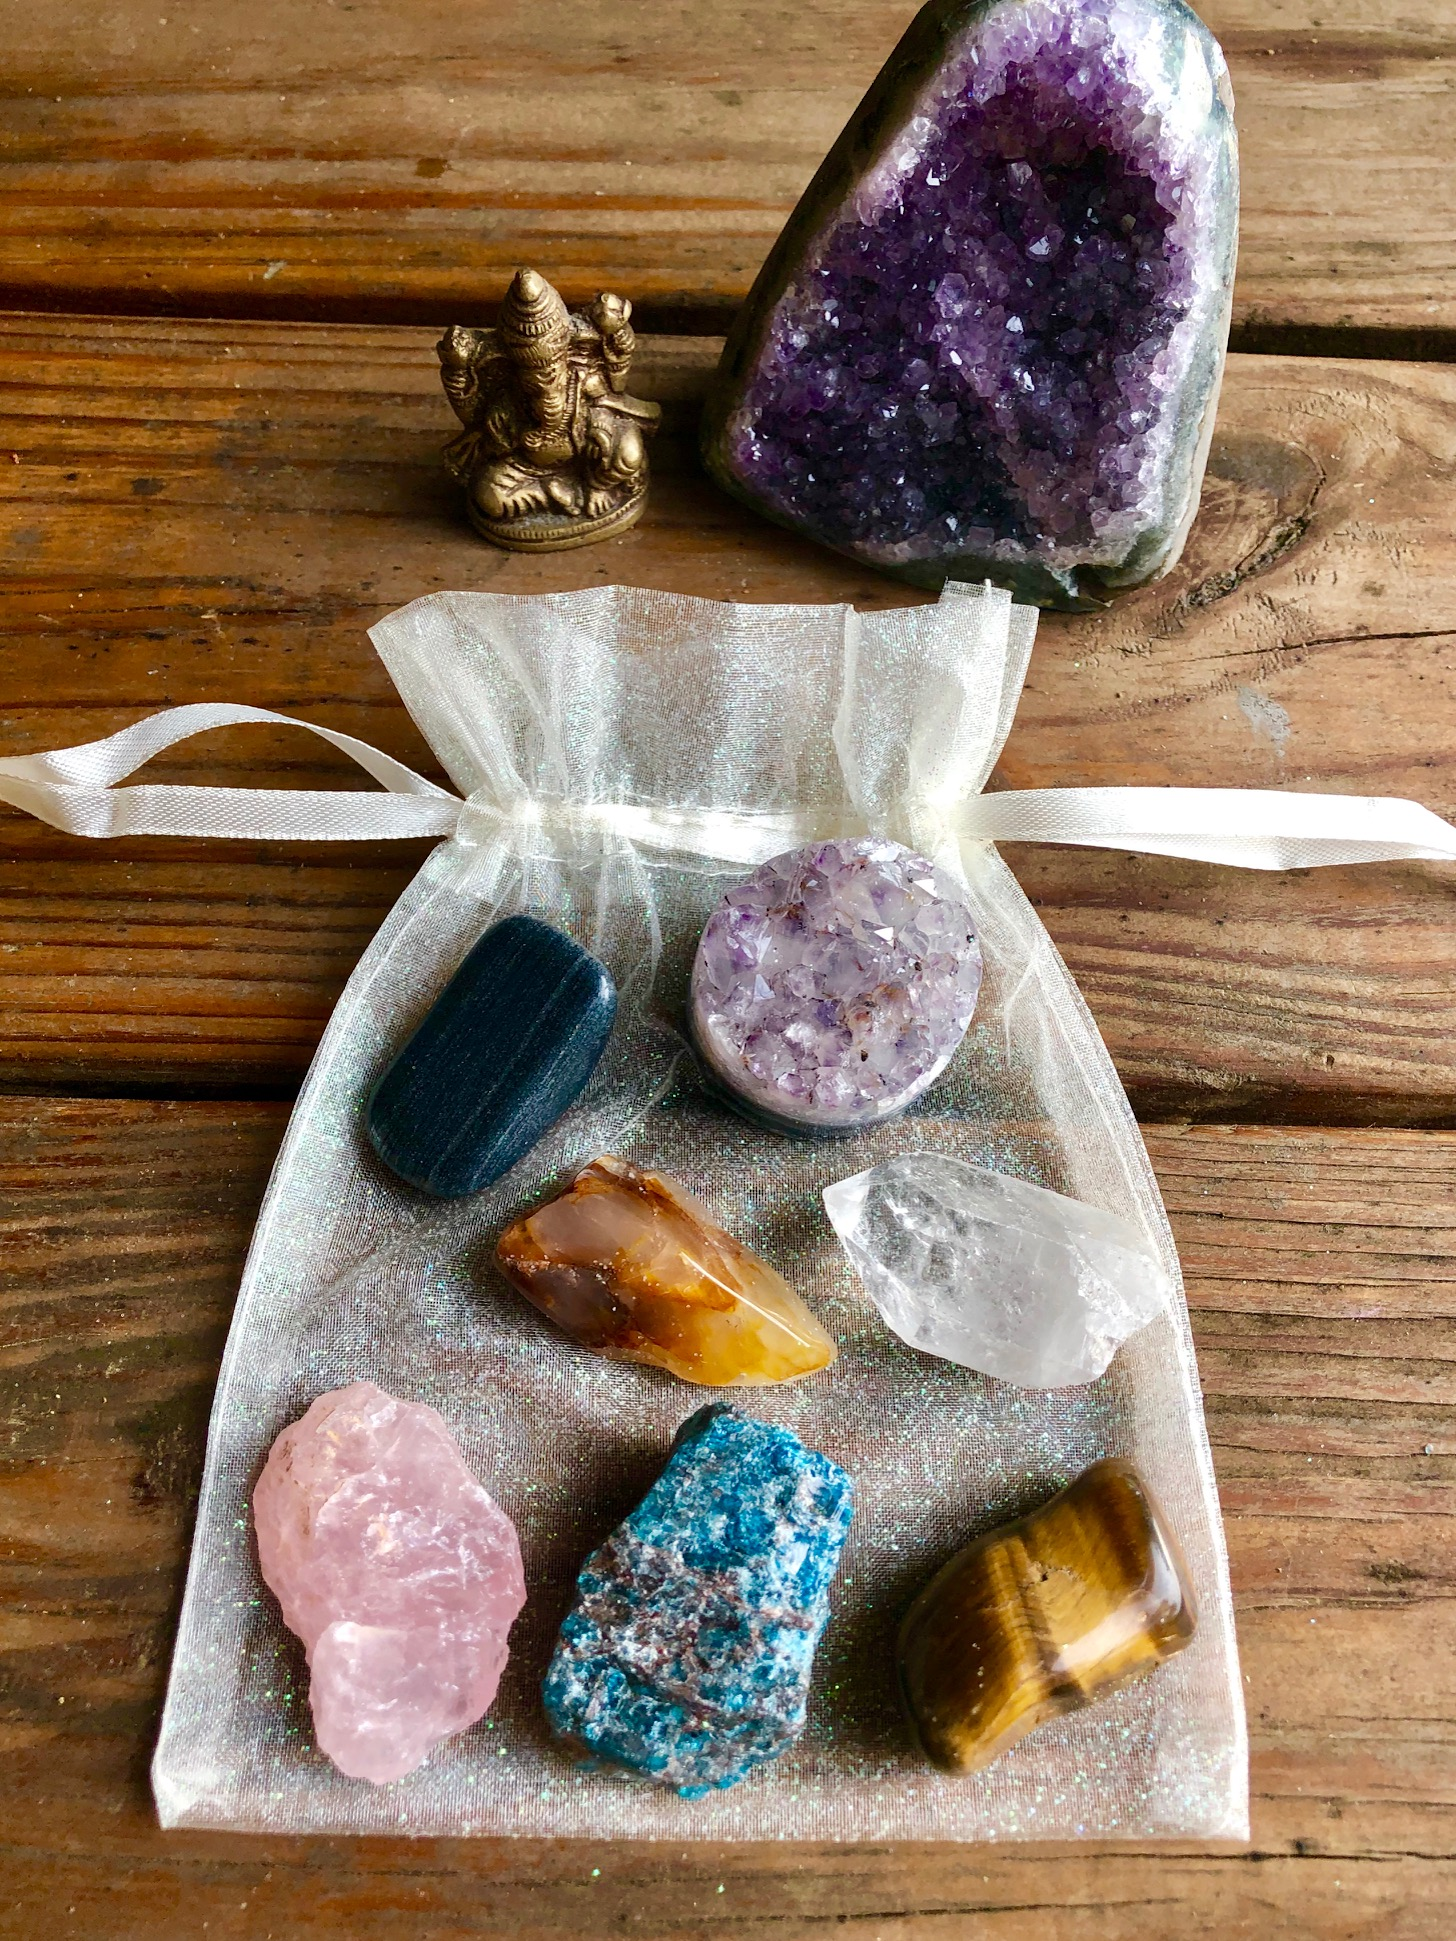 Our Chakra Gemstone Healing Kits can be purchased for $35 at our Severna Park studio. Learn what stones align with what chakra  HERE